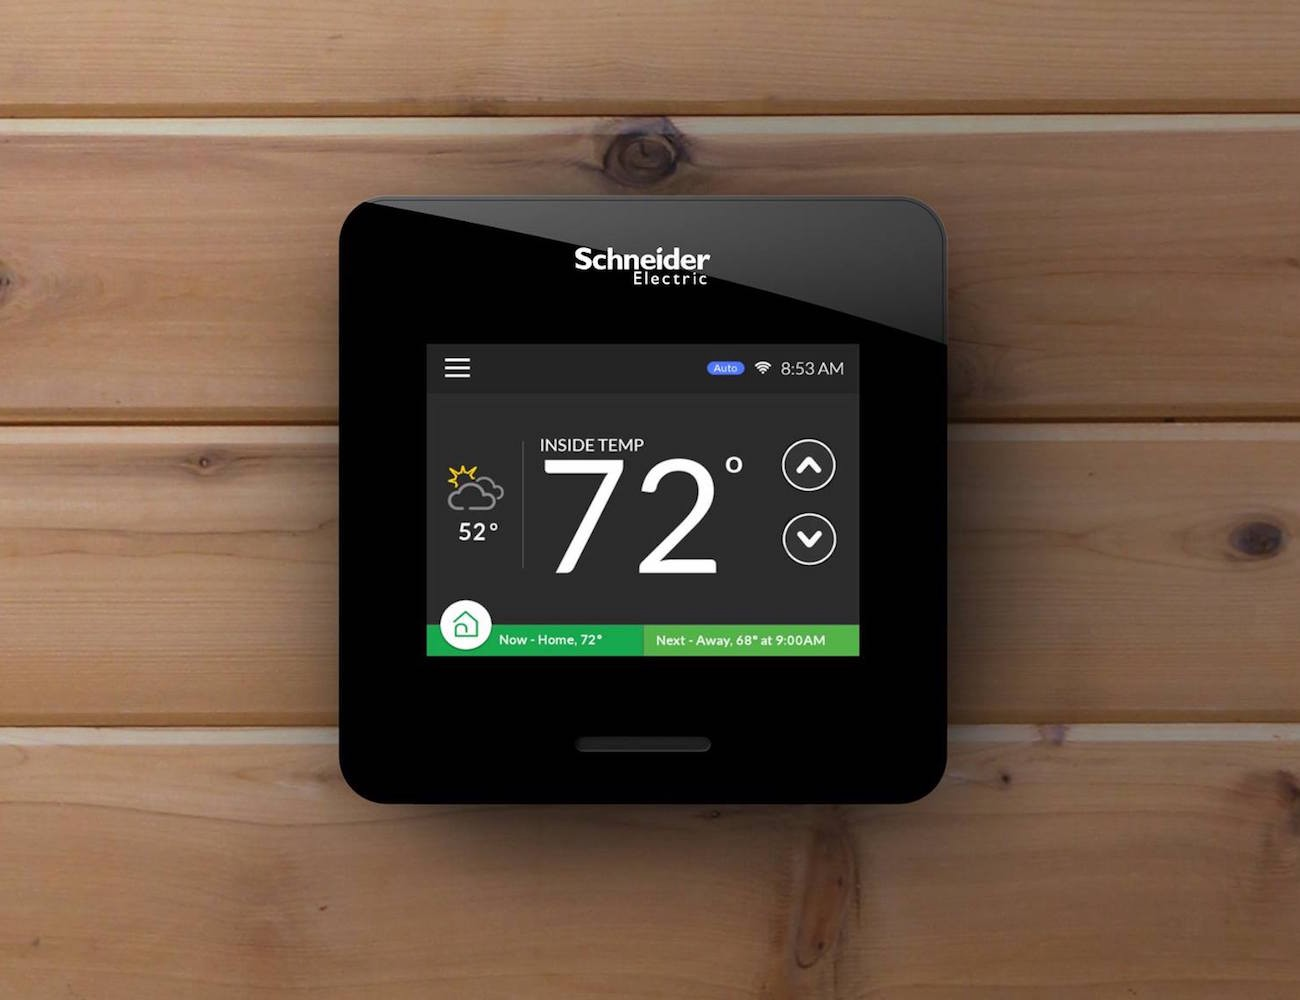 10 Smart Thermostats Your Home Needs This Winter - Gadget Flow - Medium